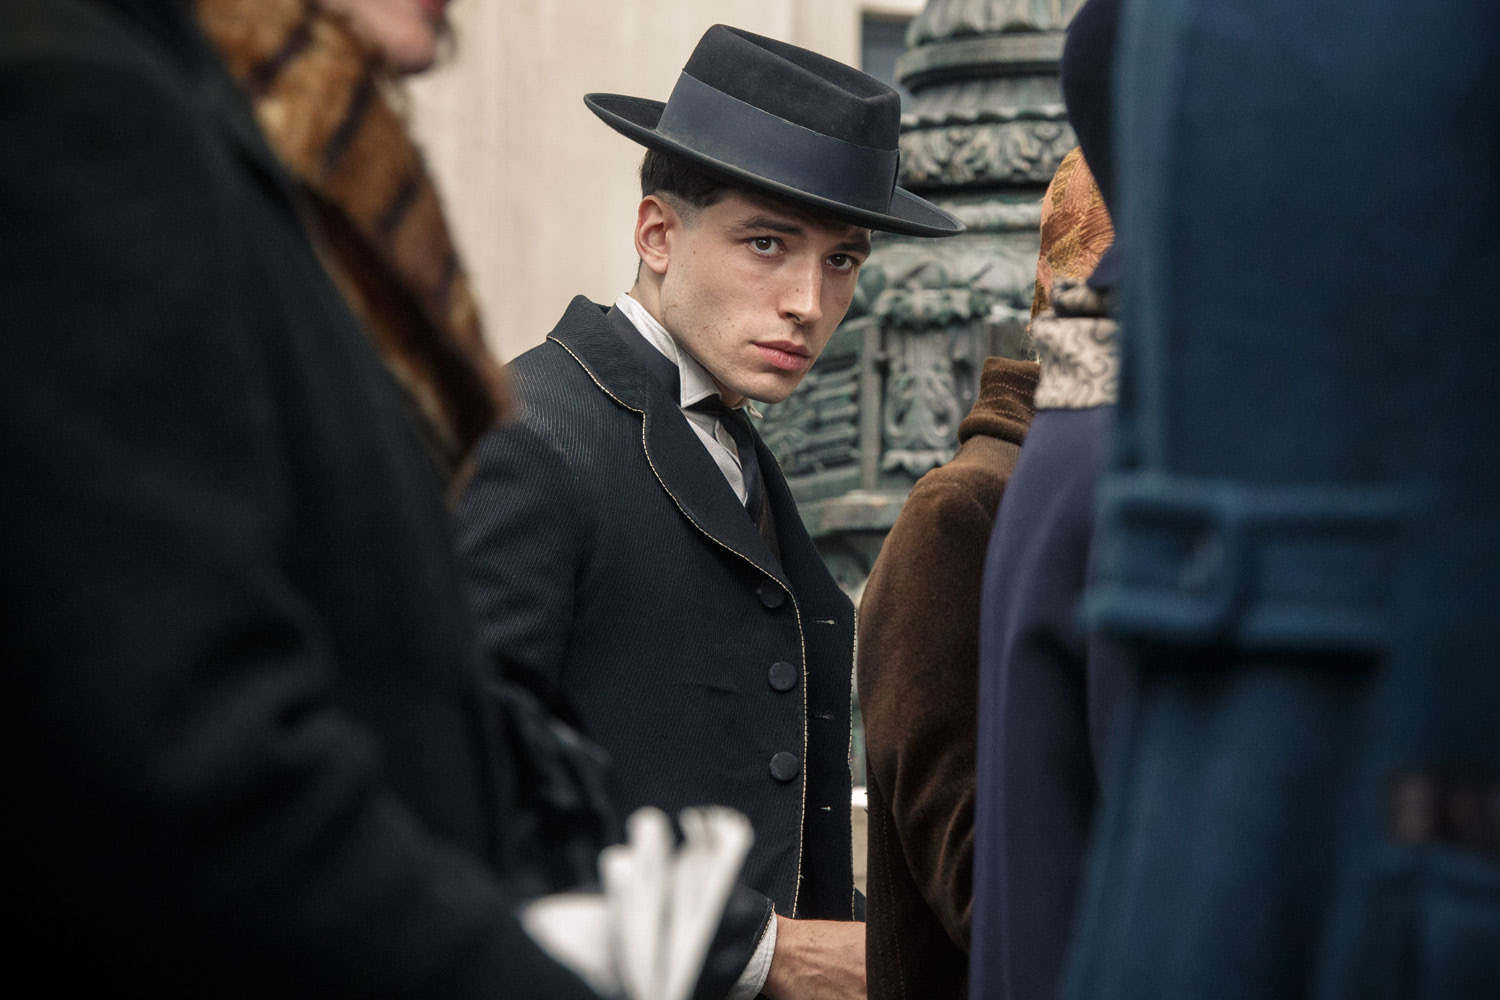 Credence looks unsure